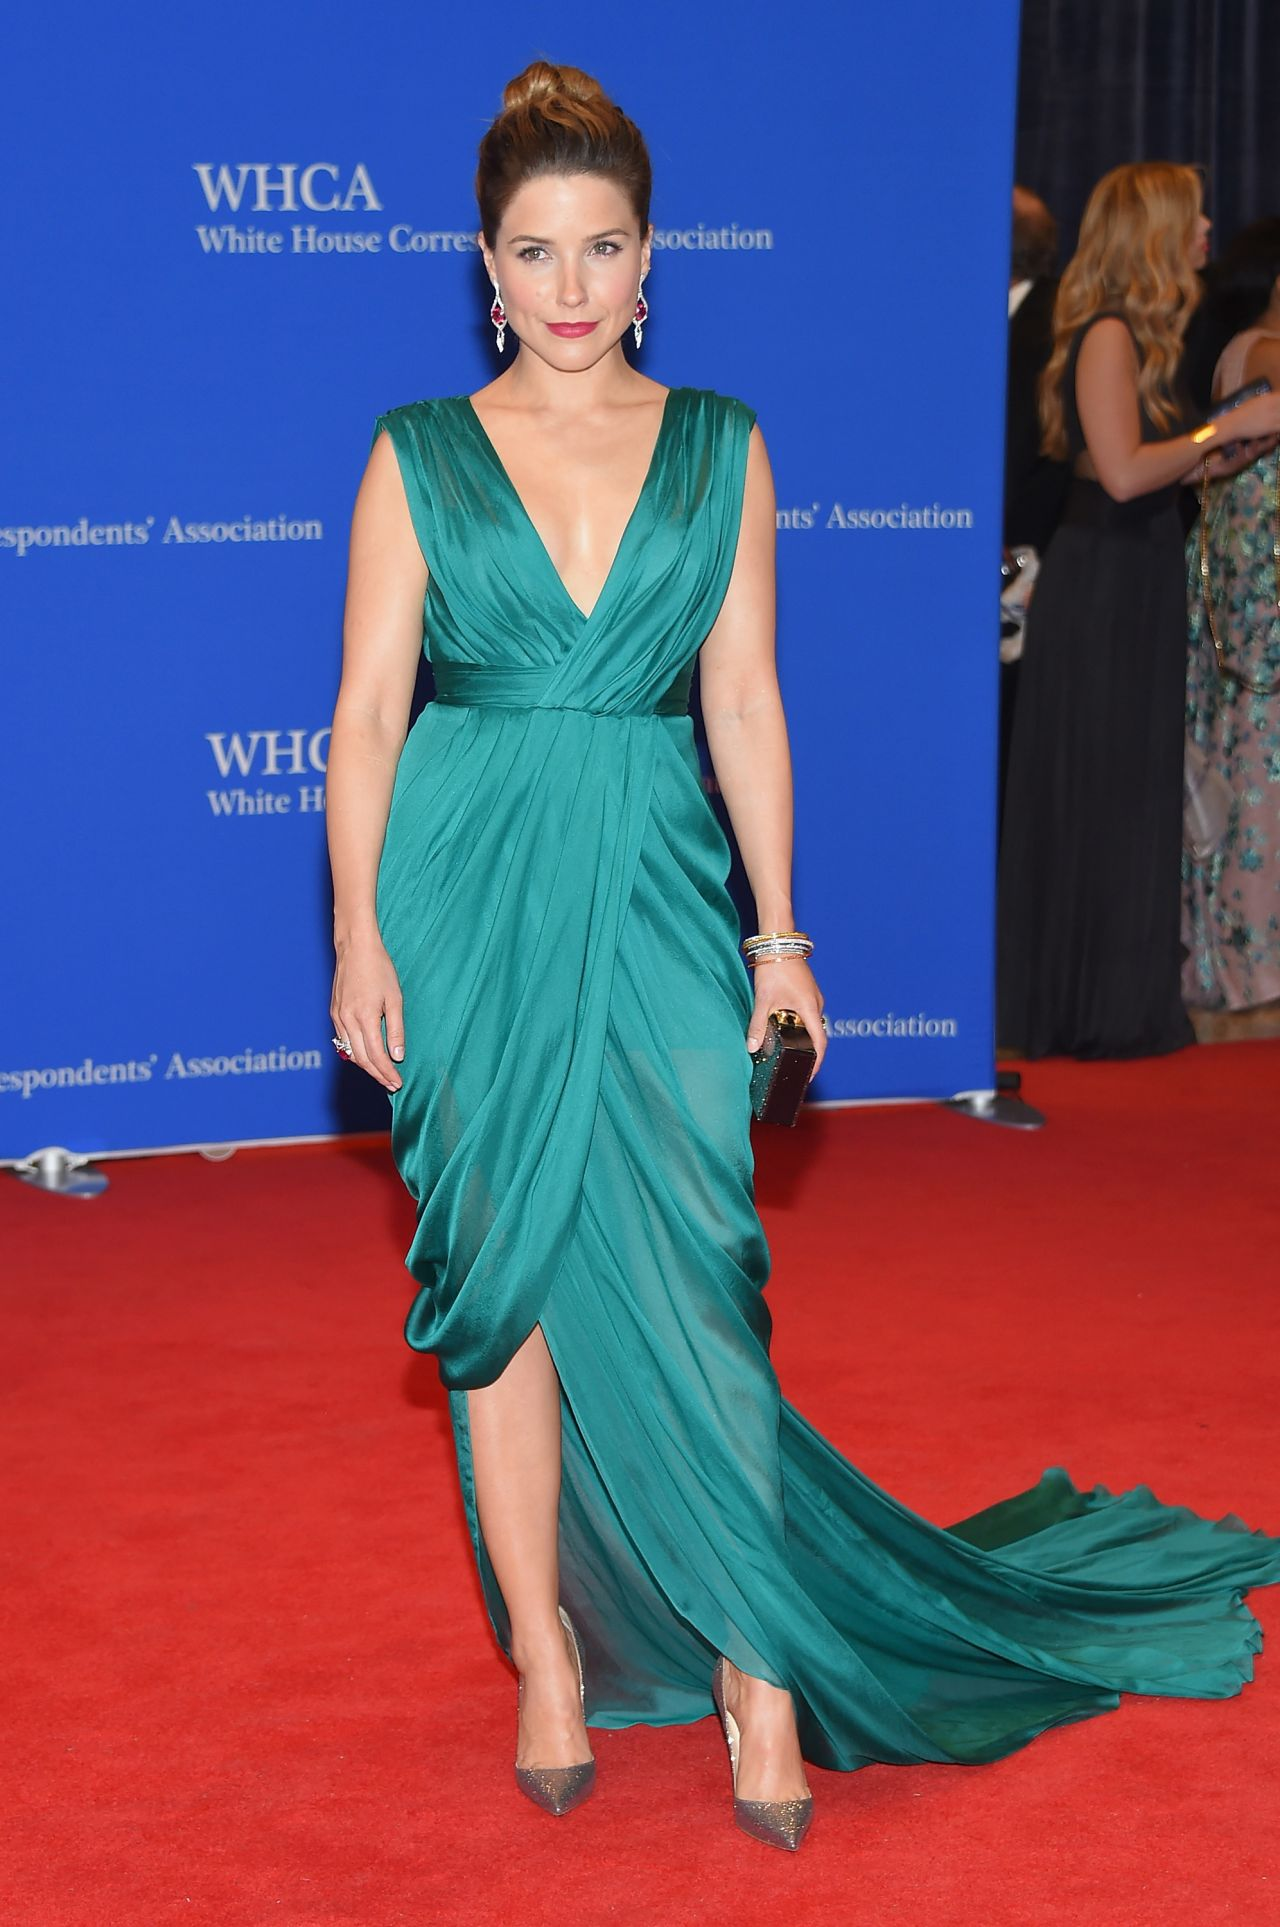 Sophia bush 2015 white house correspondents dinner in Sophia house